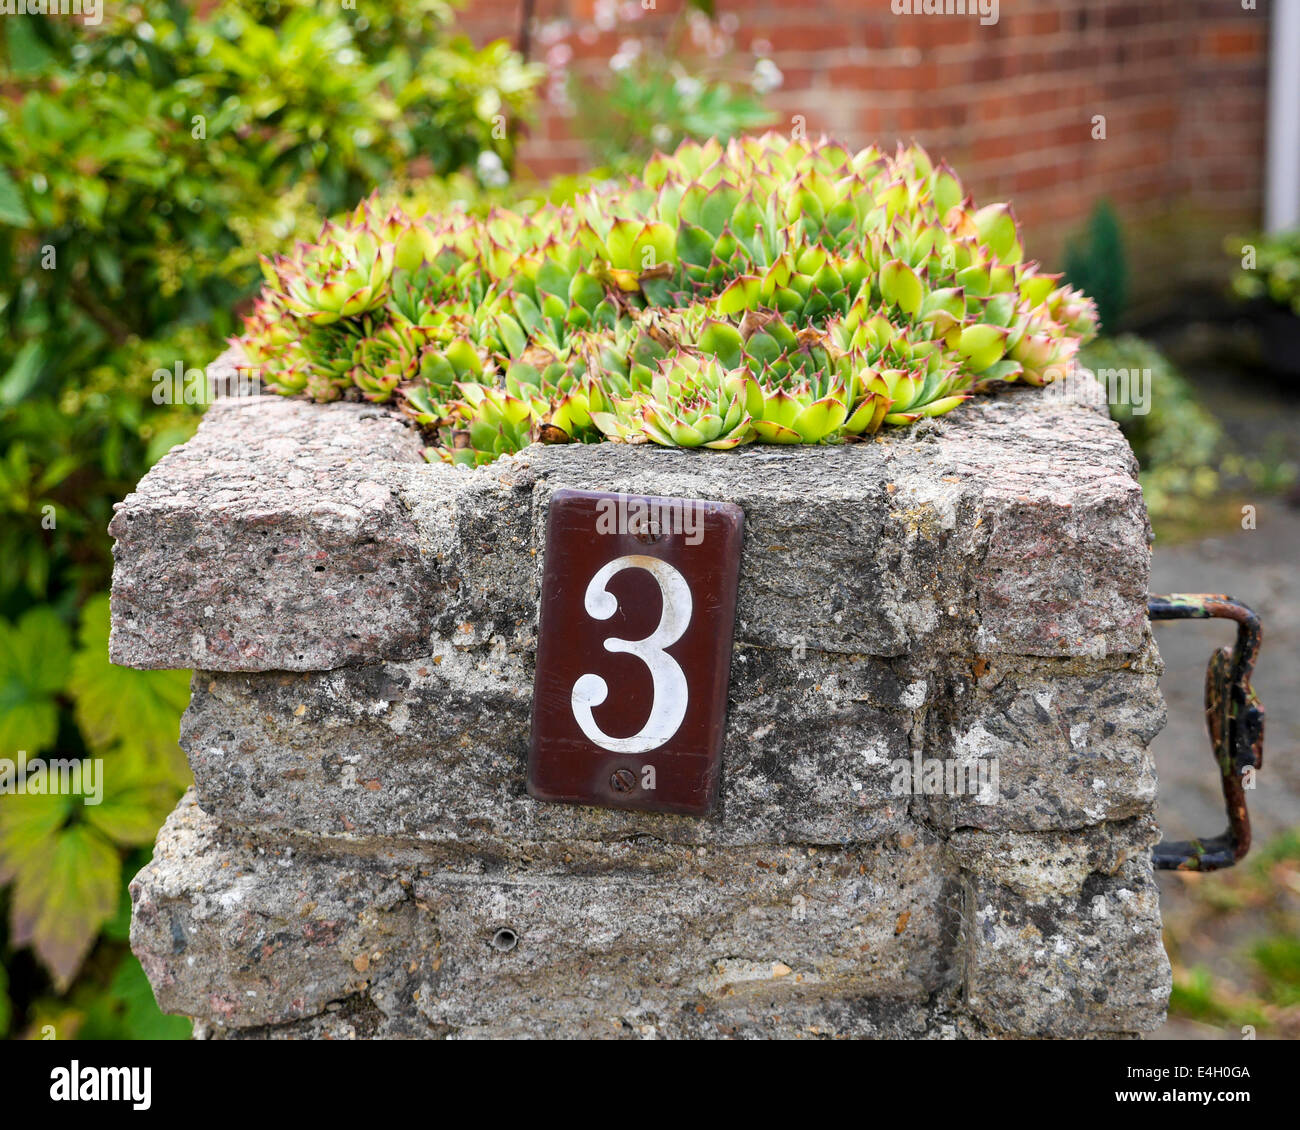 alpine plants in stone gate post and number 3 Twickenham, Greater London, UK - Stock Image